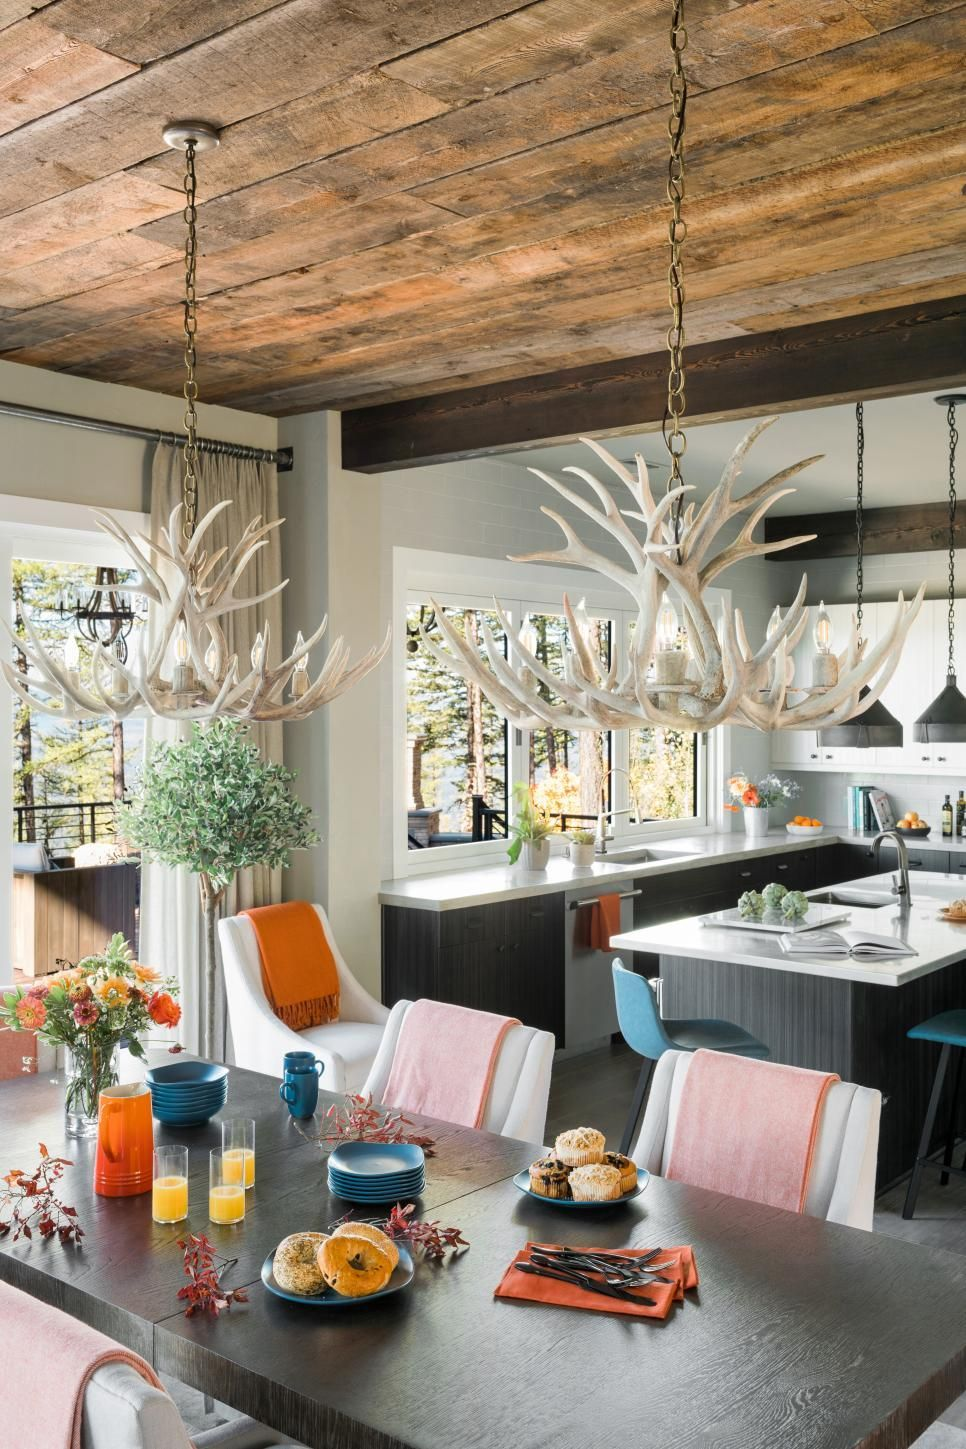 Hgtv Dream Home 2019 Dining Room Pictures Hgtv Dream Home 2019 Hgtv With Images Hgtv Dream Homes Hgtv Dream Home Trendy Living Rooms